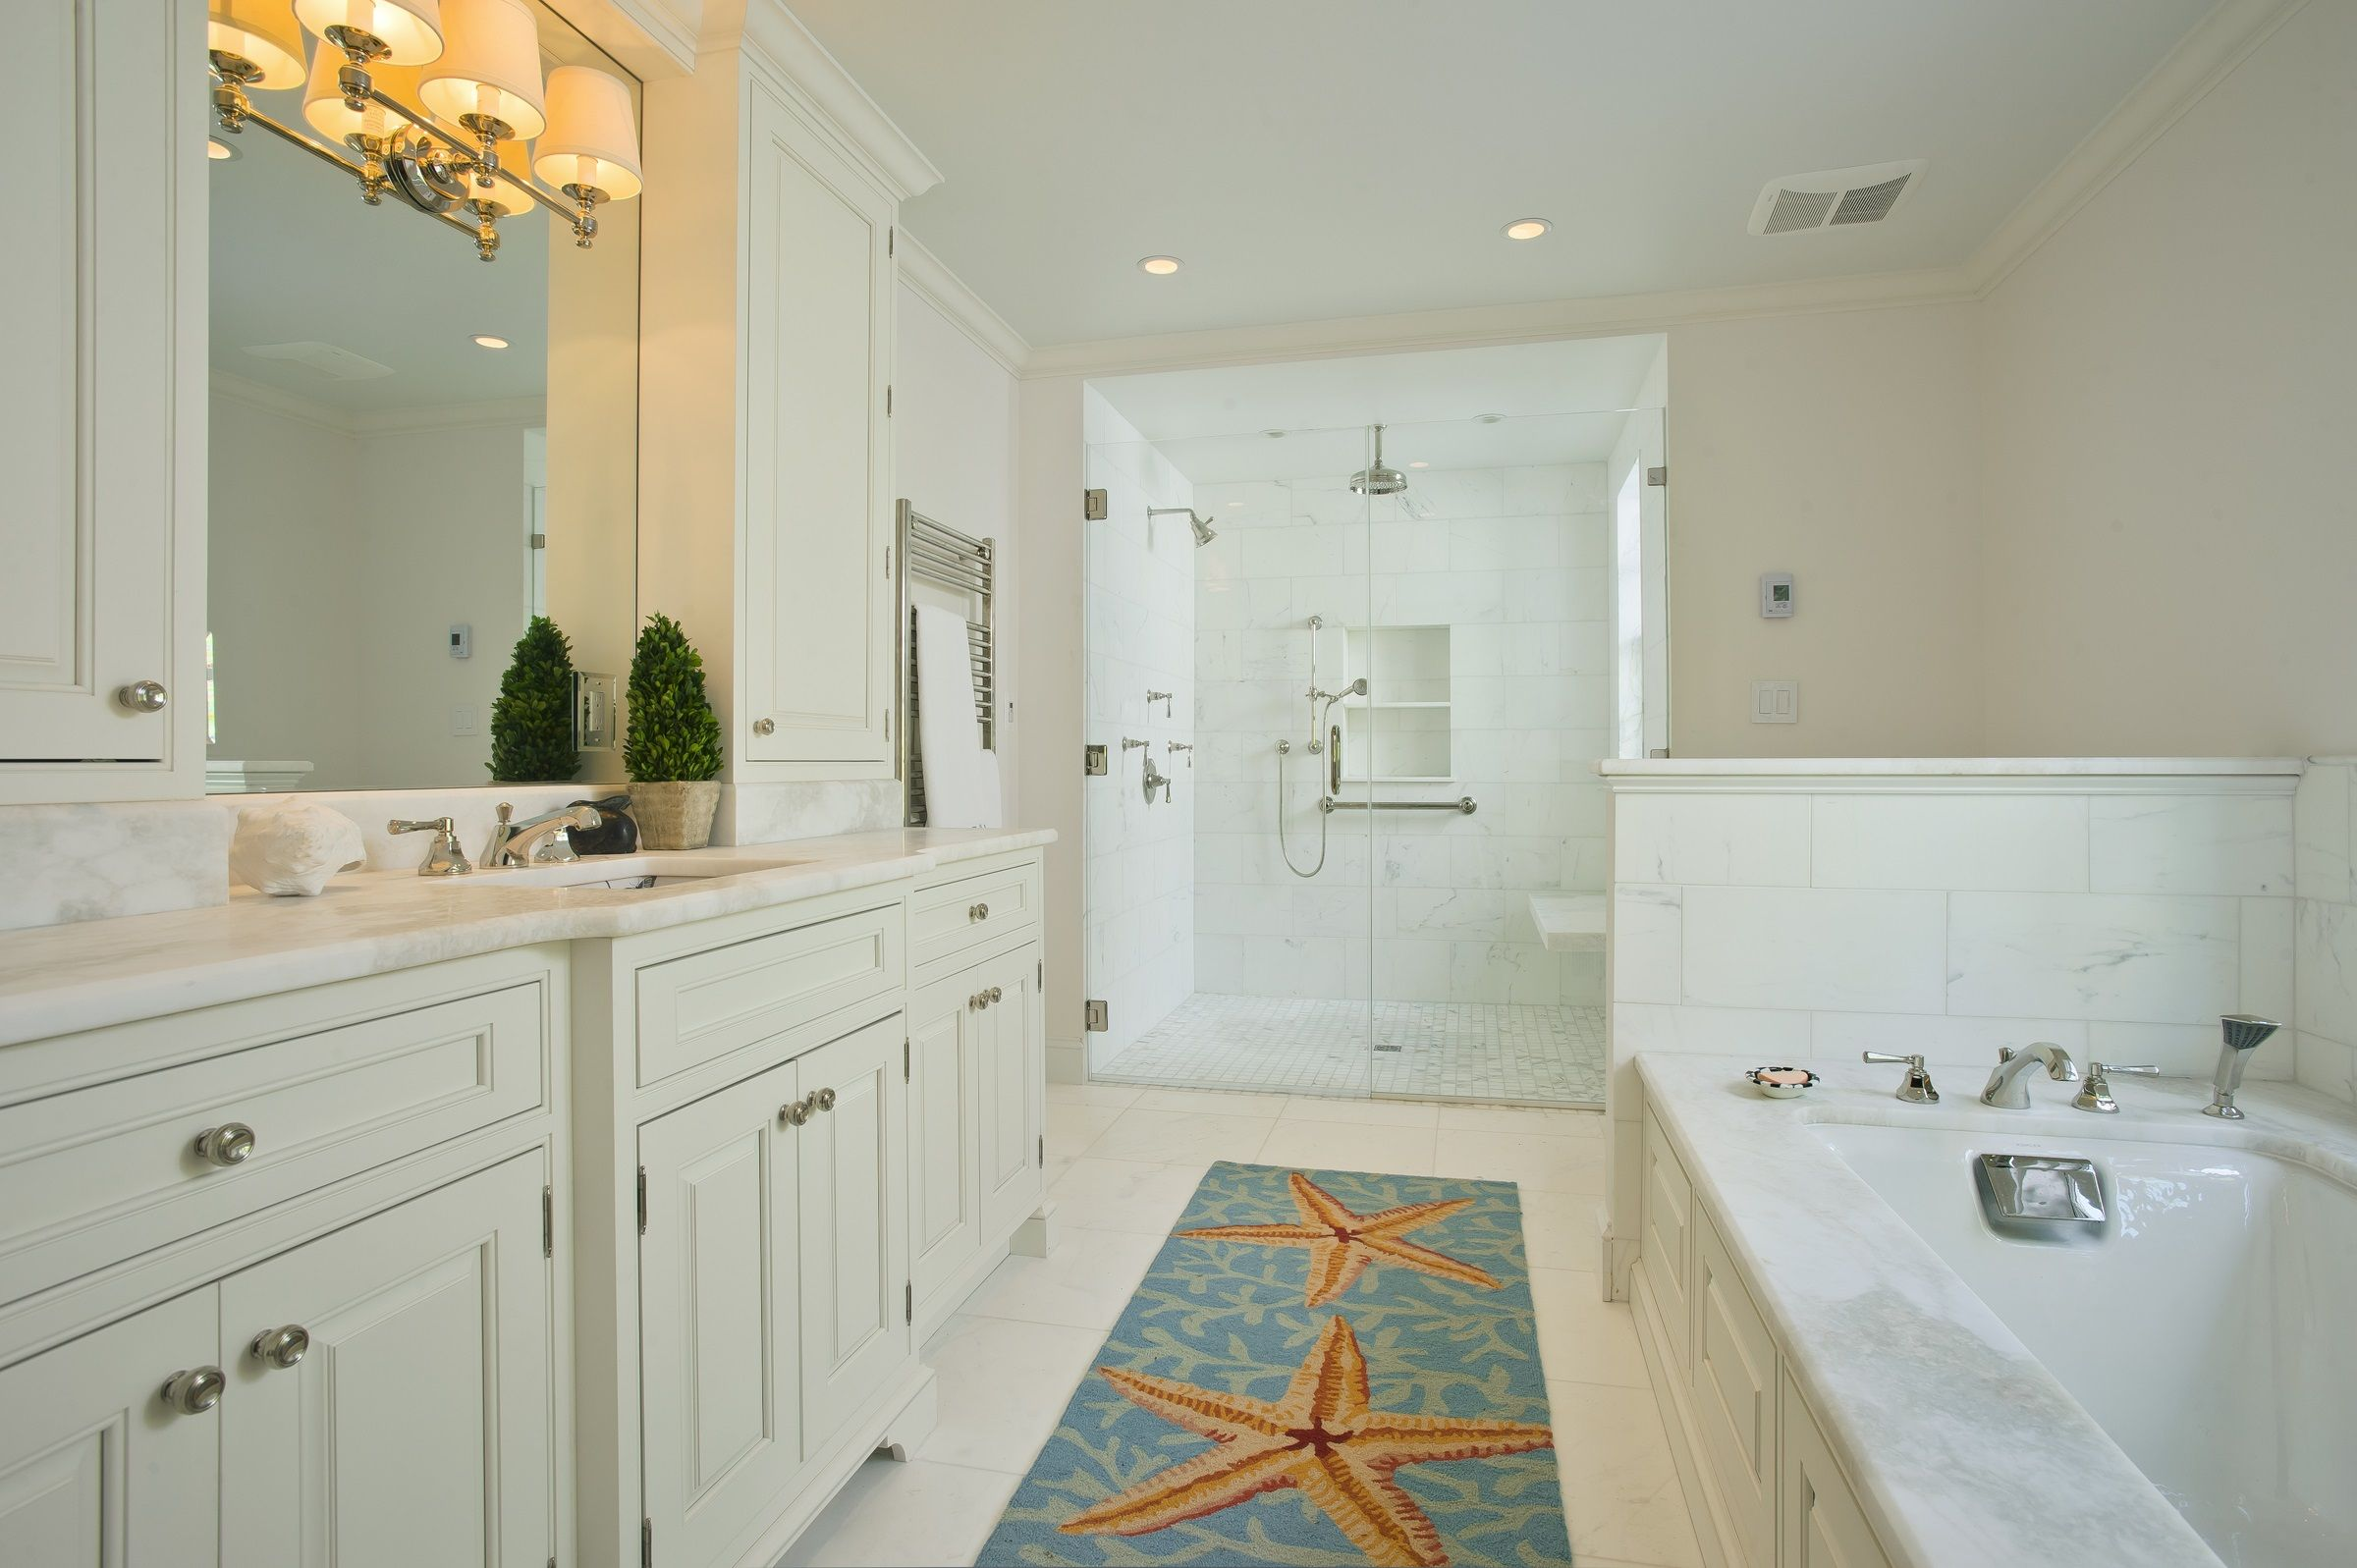 Bathroom Remodeling Towson bathroom remodel $80,000-$100,000 delbert adams construction group